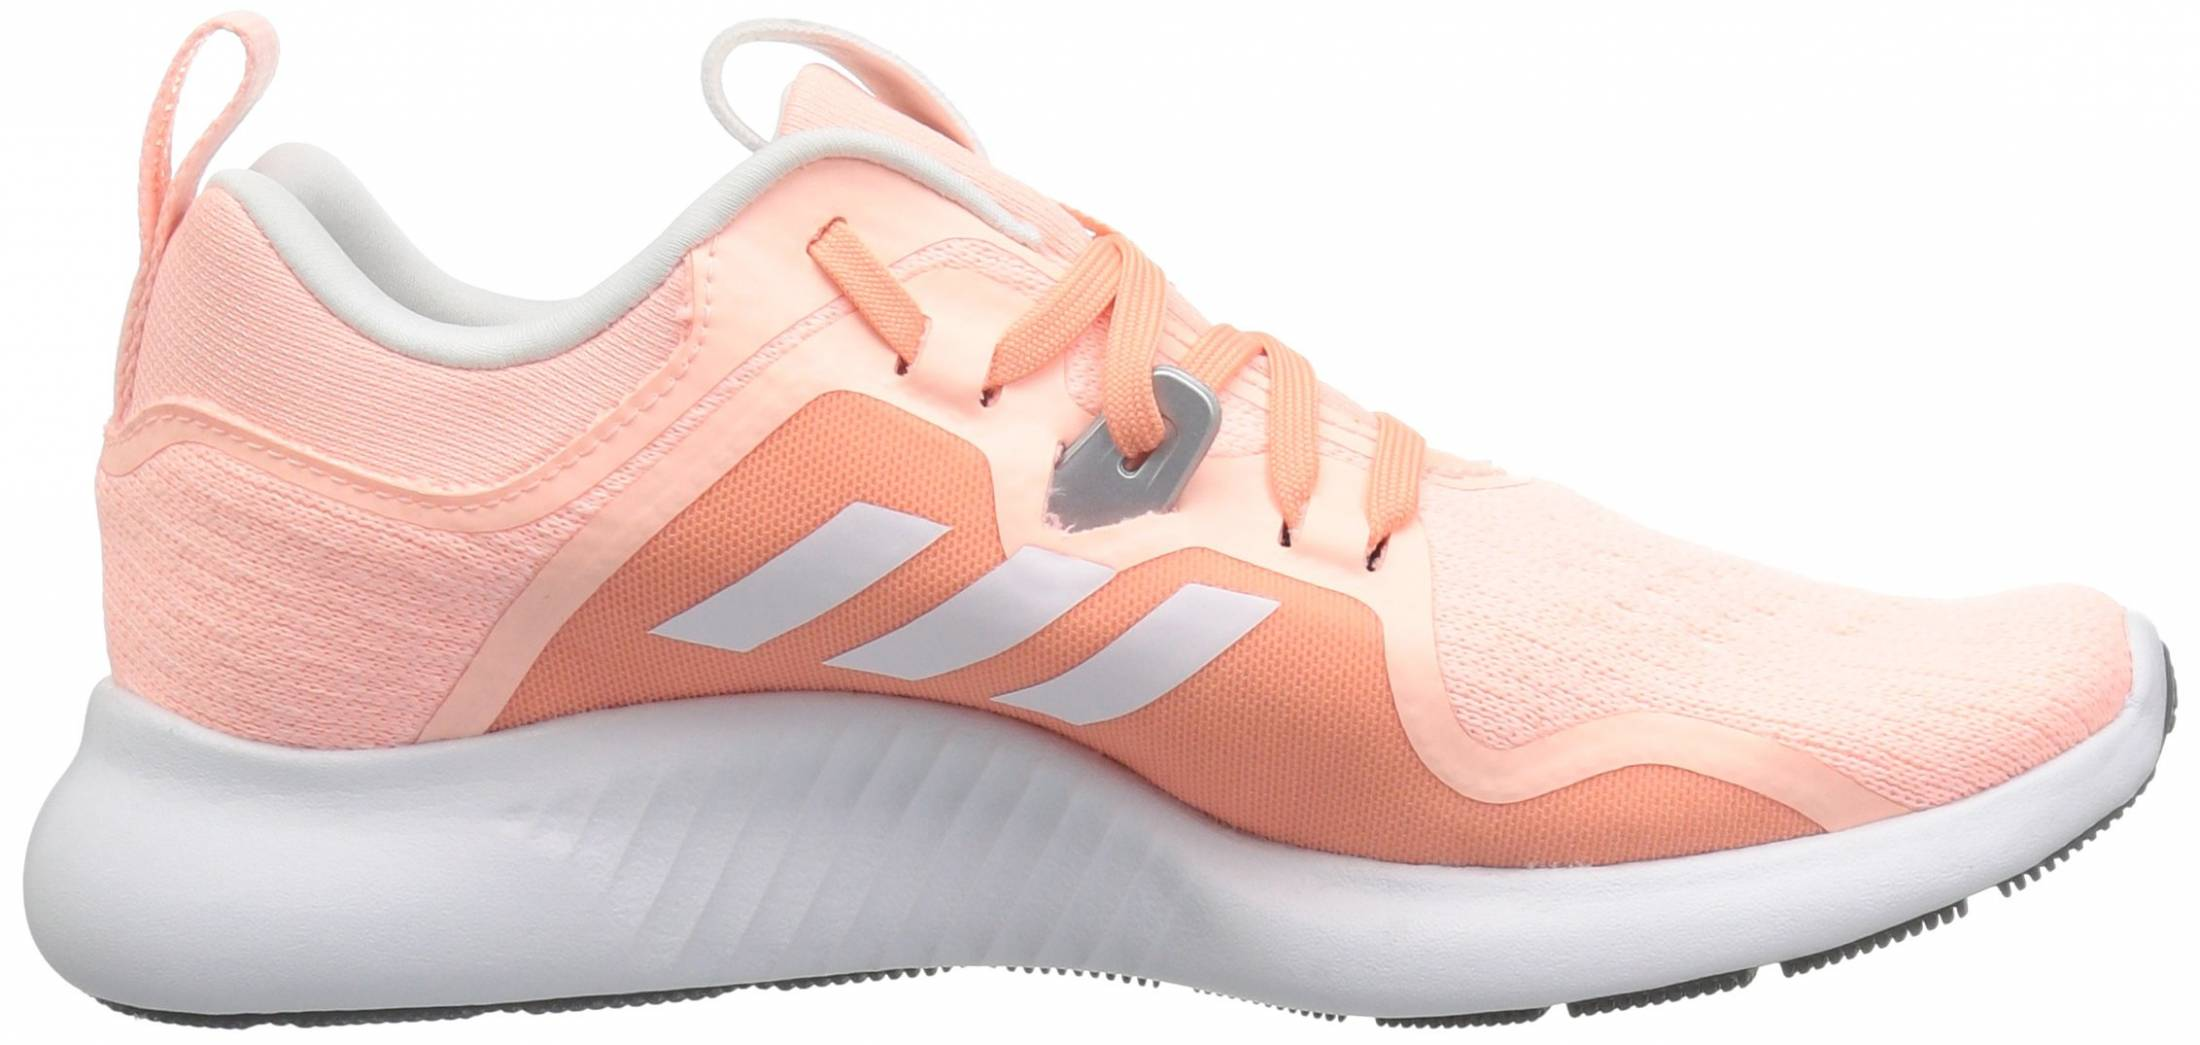 Only $50 + Review of Adidas EdgeBounce